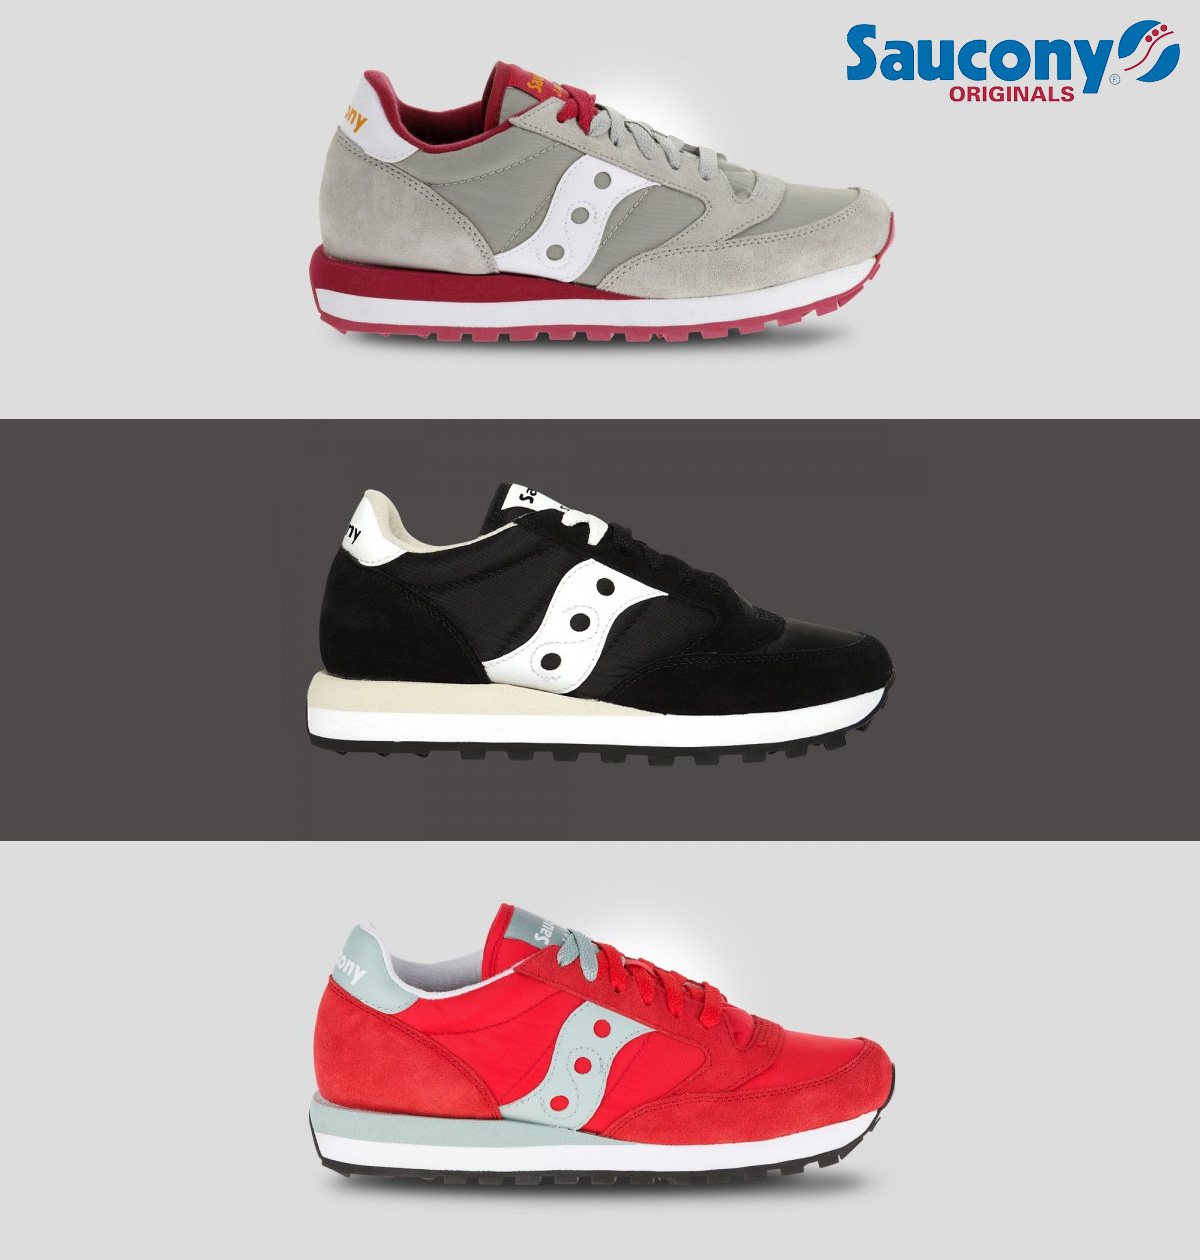 saucony-jazz-originals-inverno-2017